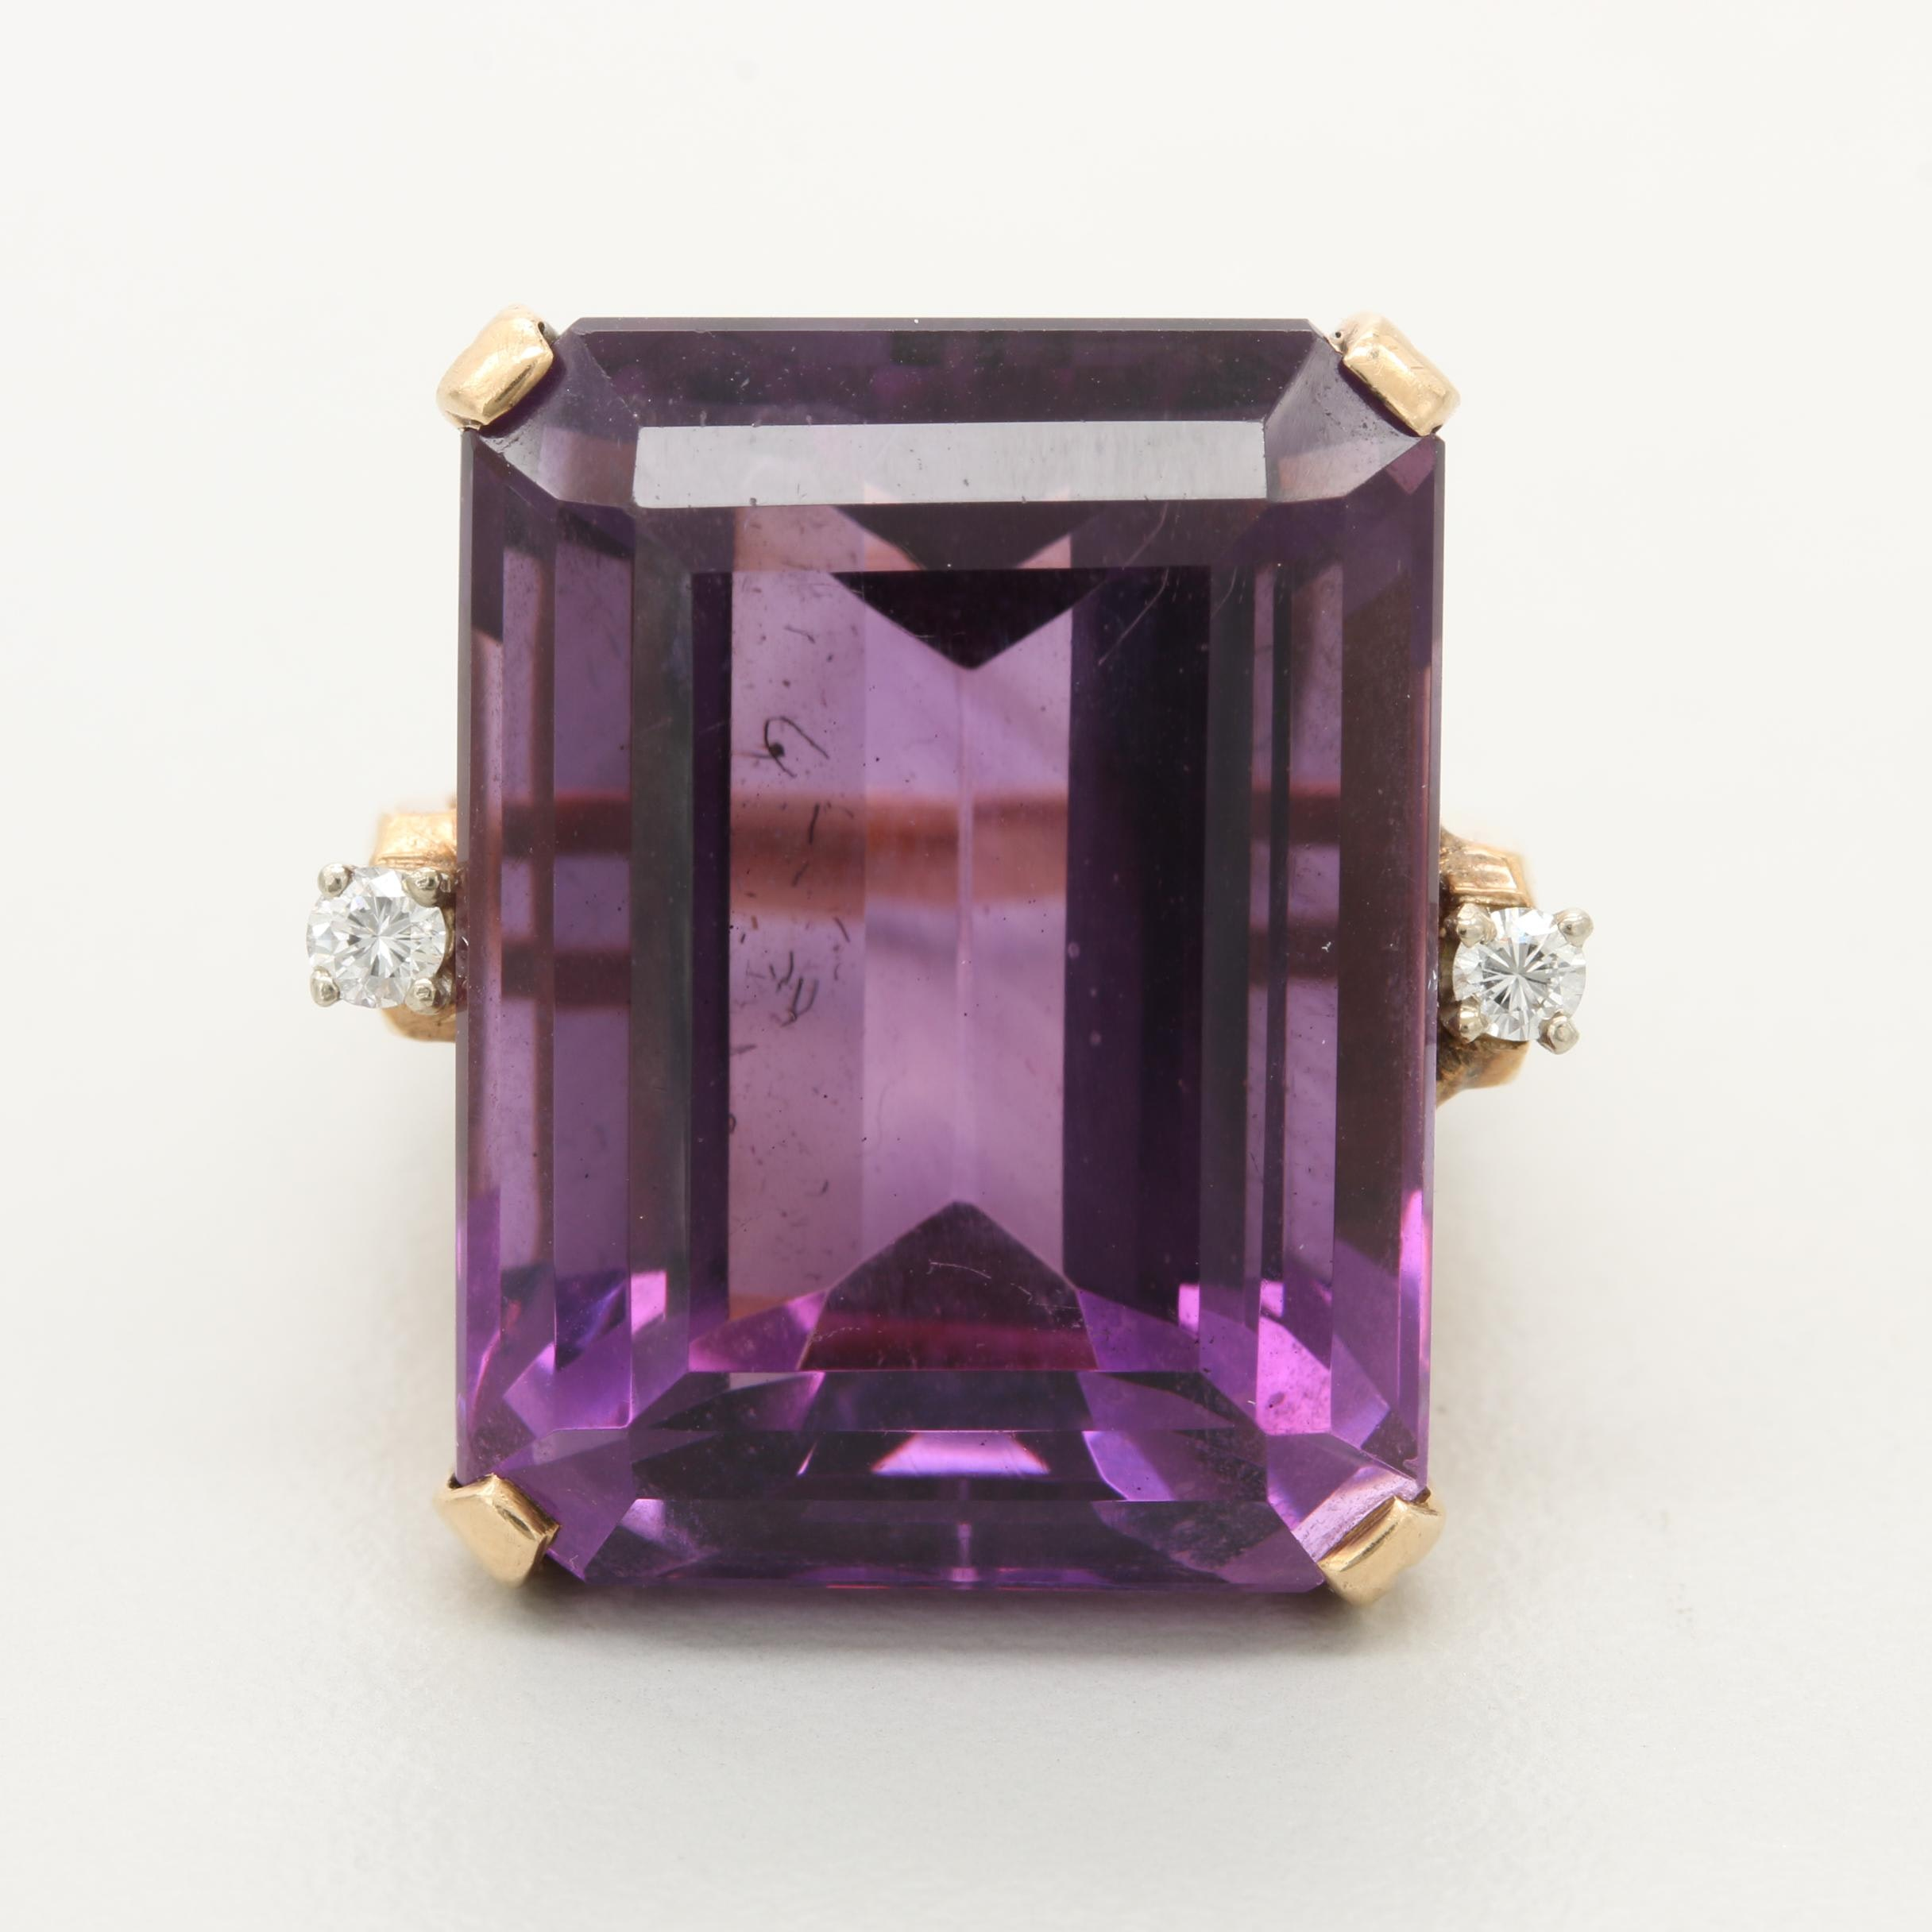 14K Yellow Gold 31.37 CT Amethyst and Diamond Ring